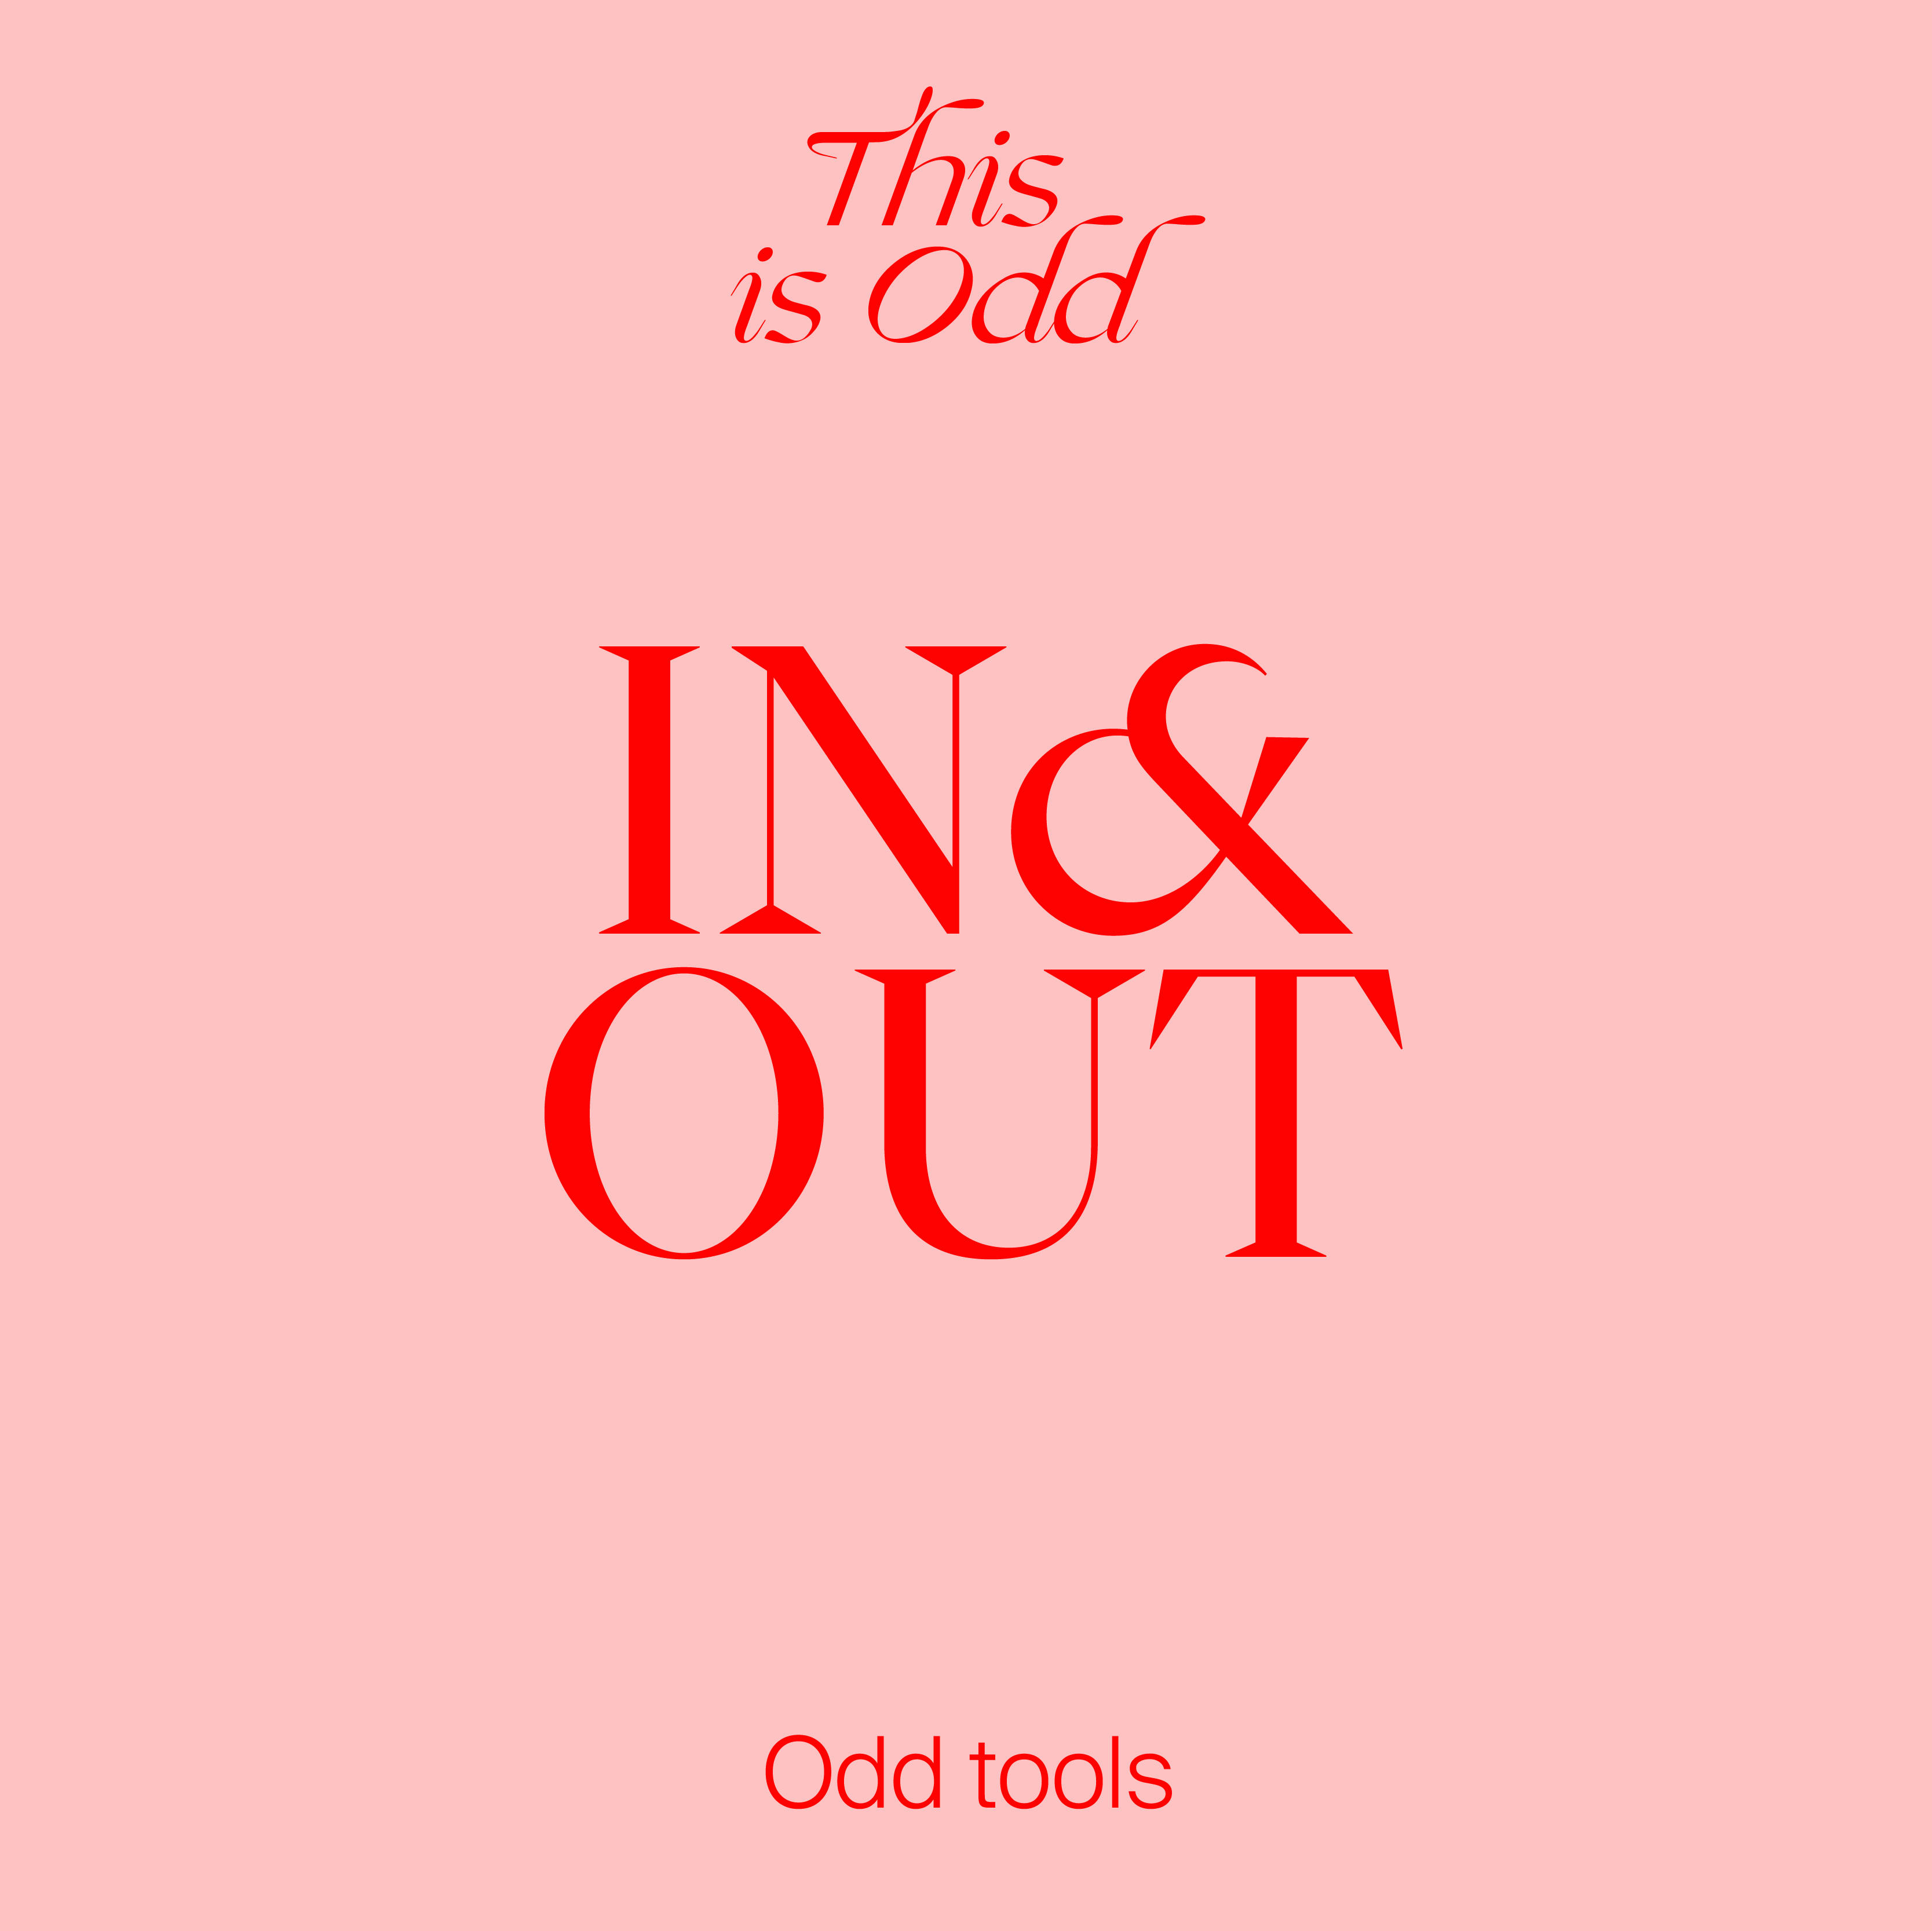 10 tools_in&out-33